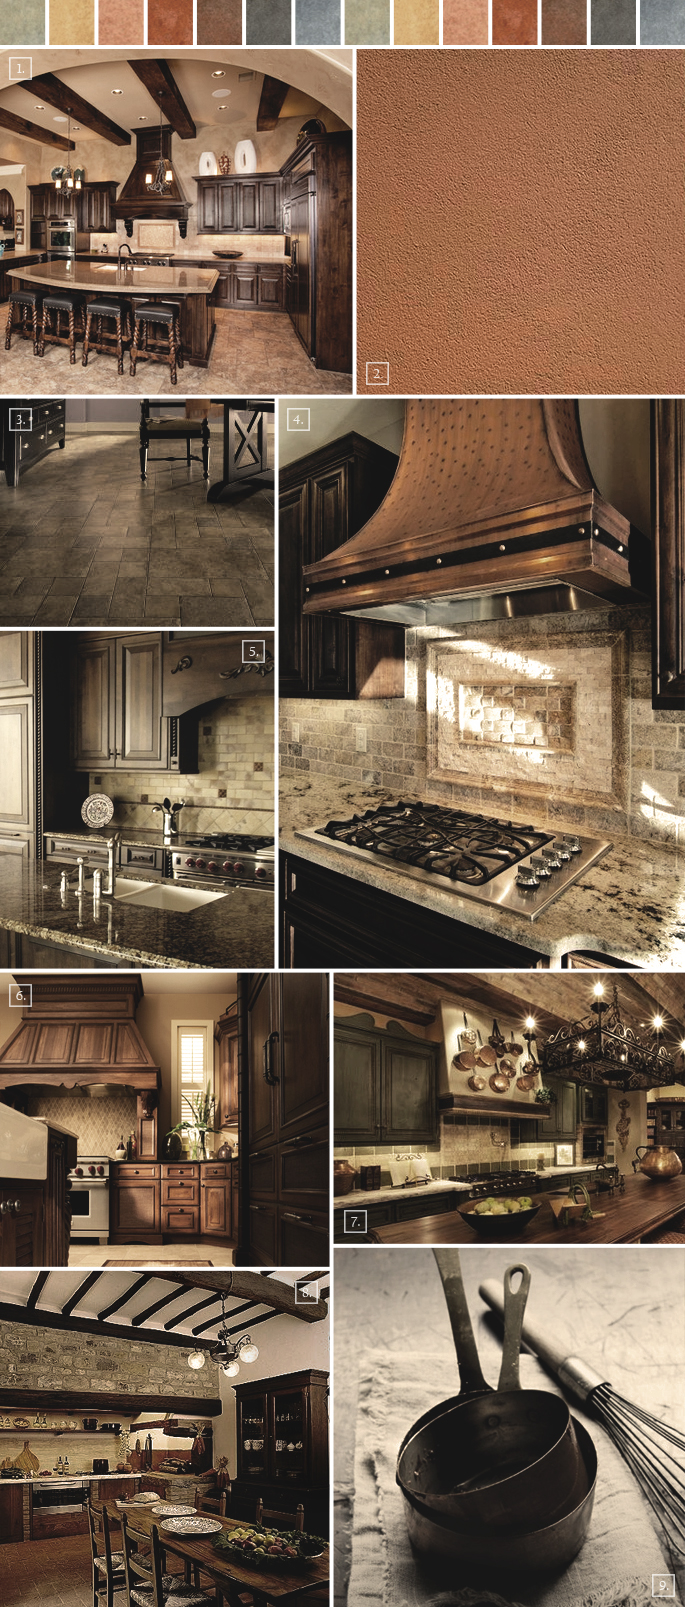 Tuscan Decor Ideas Living Room Made In Italy: Tuscan Kitchen Decor Ideas Mood Board